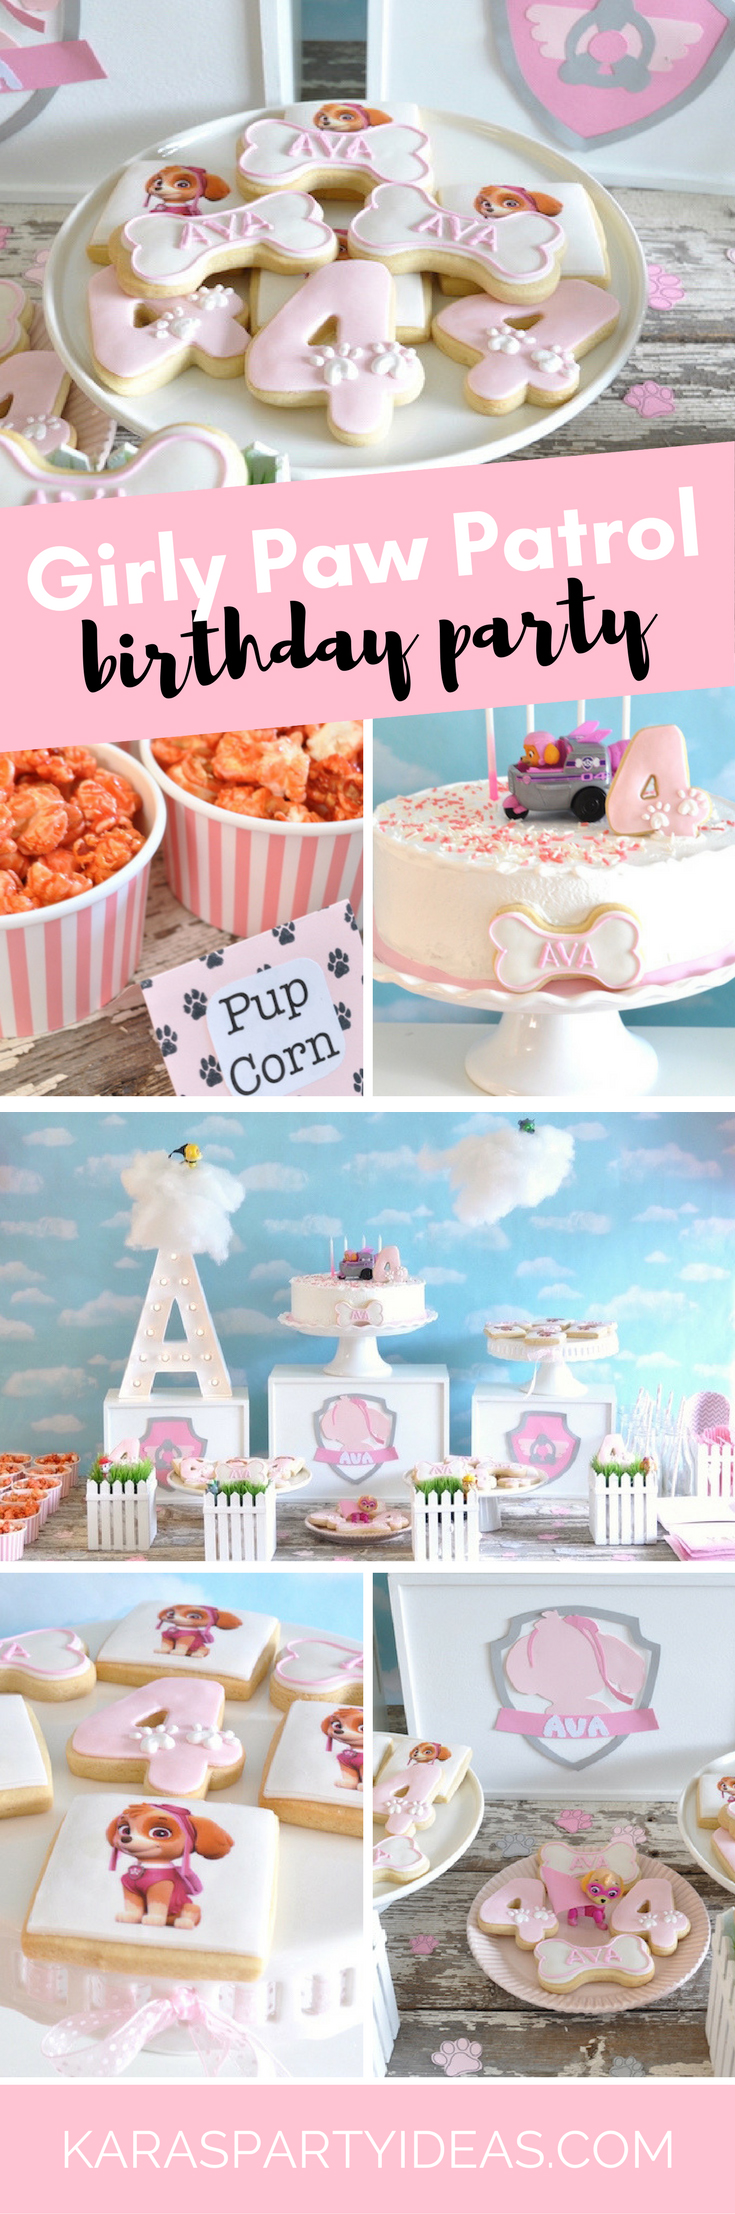 Girly Paw Patrol Birthday Party via Kara's Party Ideas - KarasPartyIdeas.com